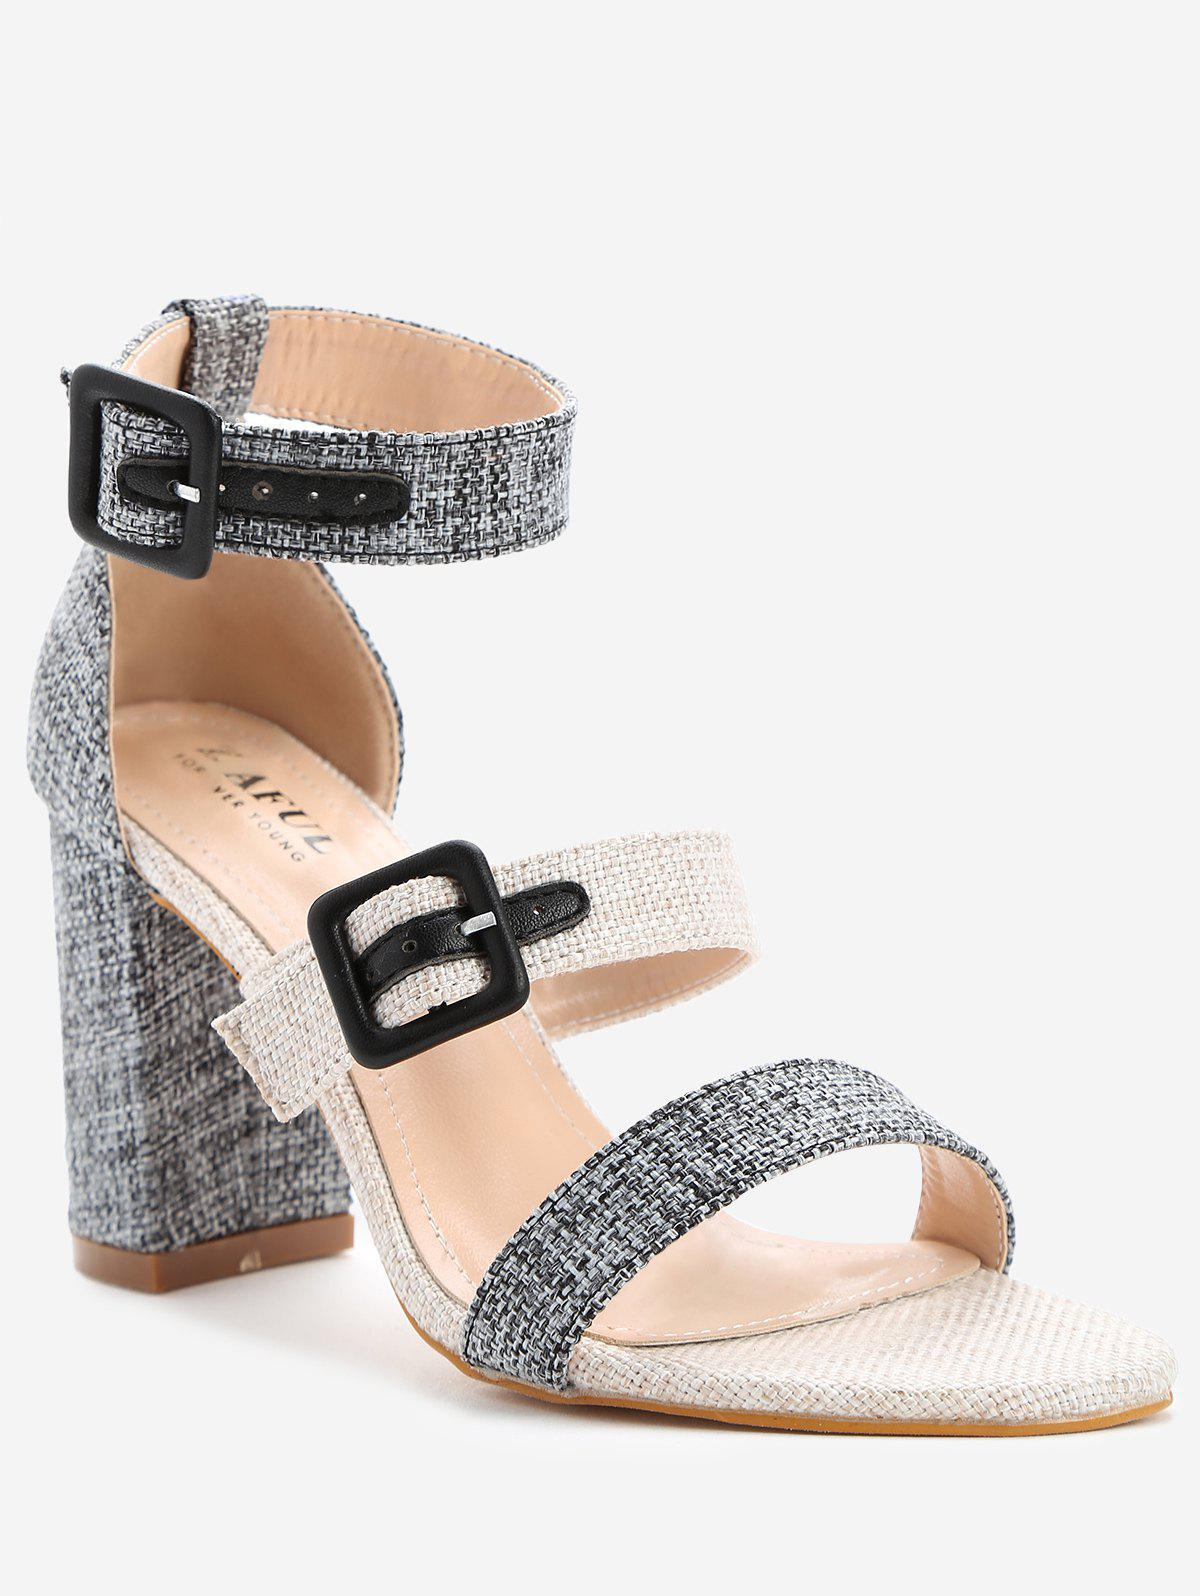 Store Contrasting Color Block Heel Sandals